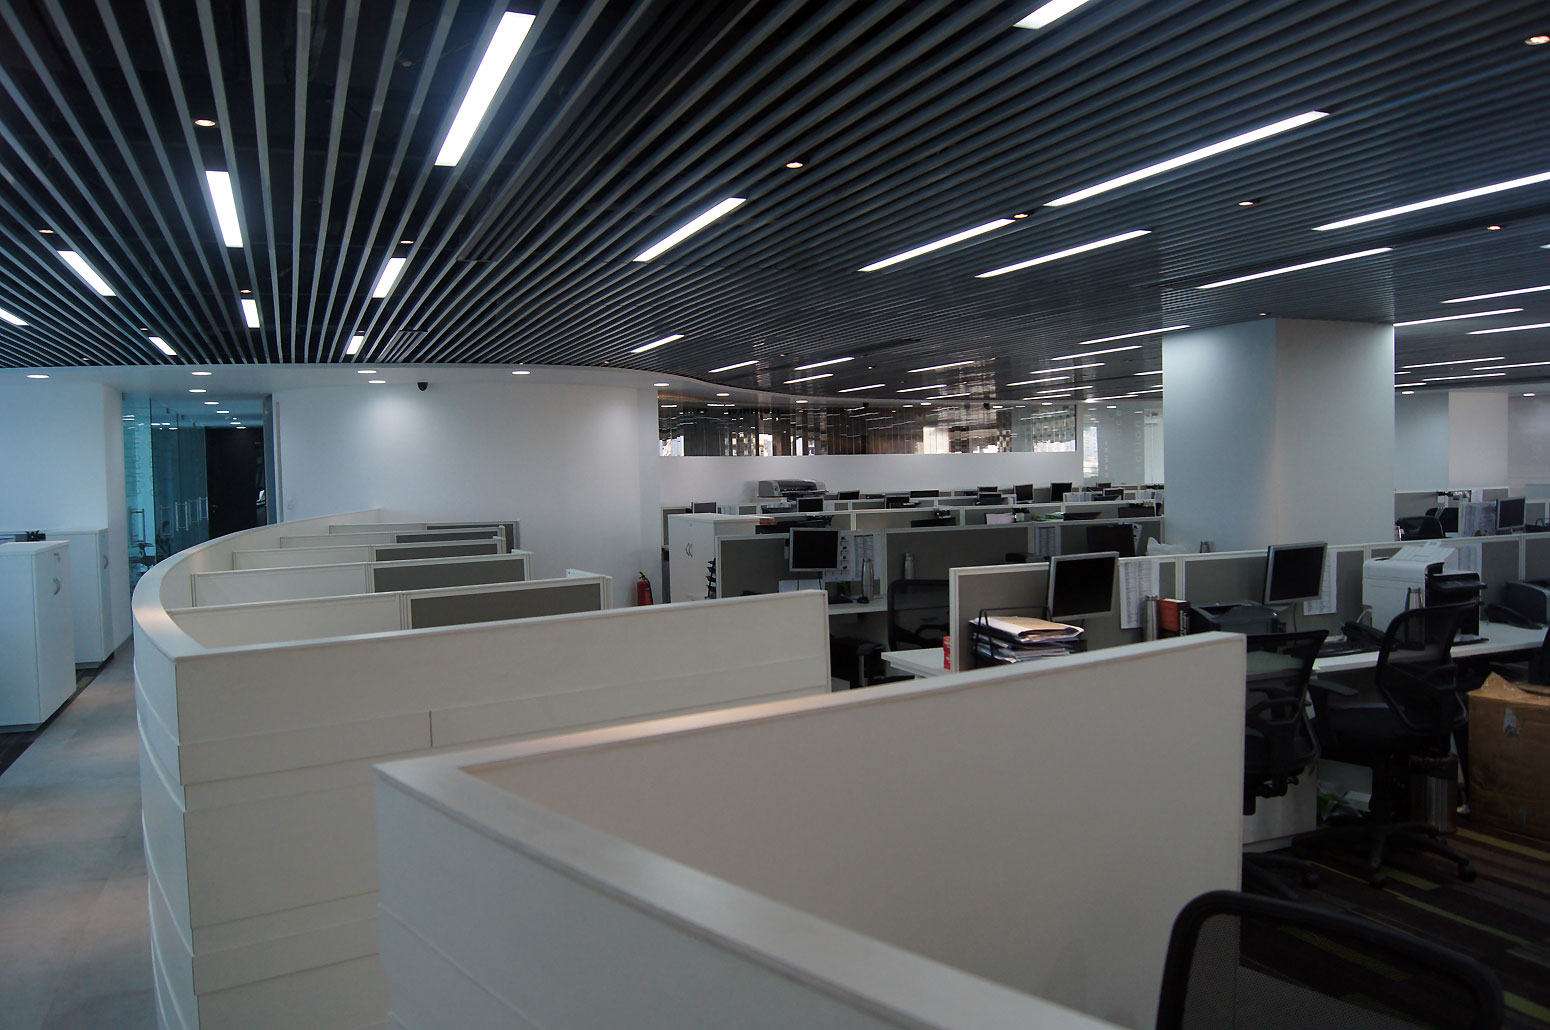 PVR Regional Office Acmeview Interior Solutions Pvt Ltd